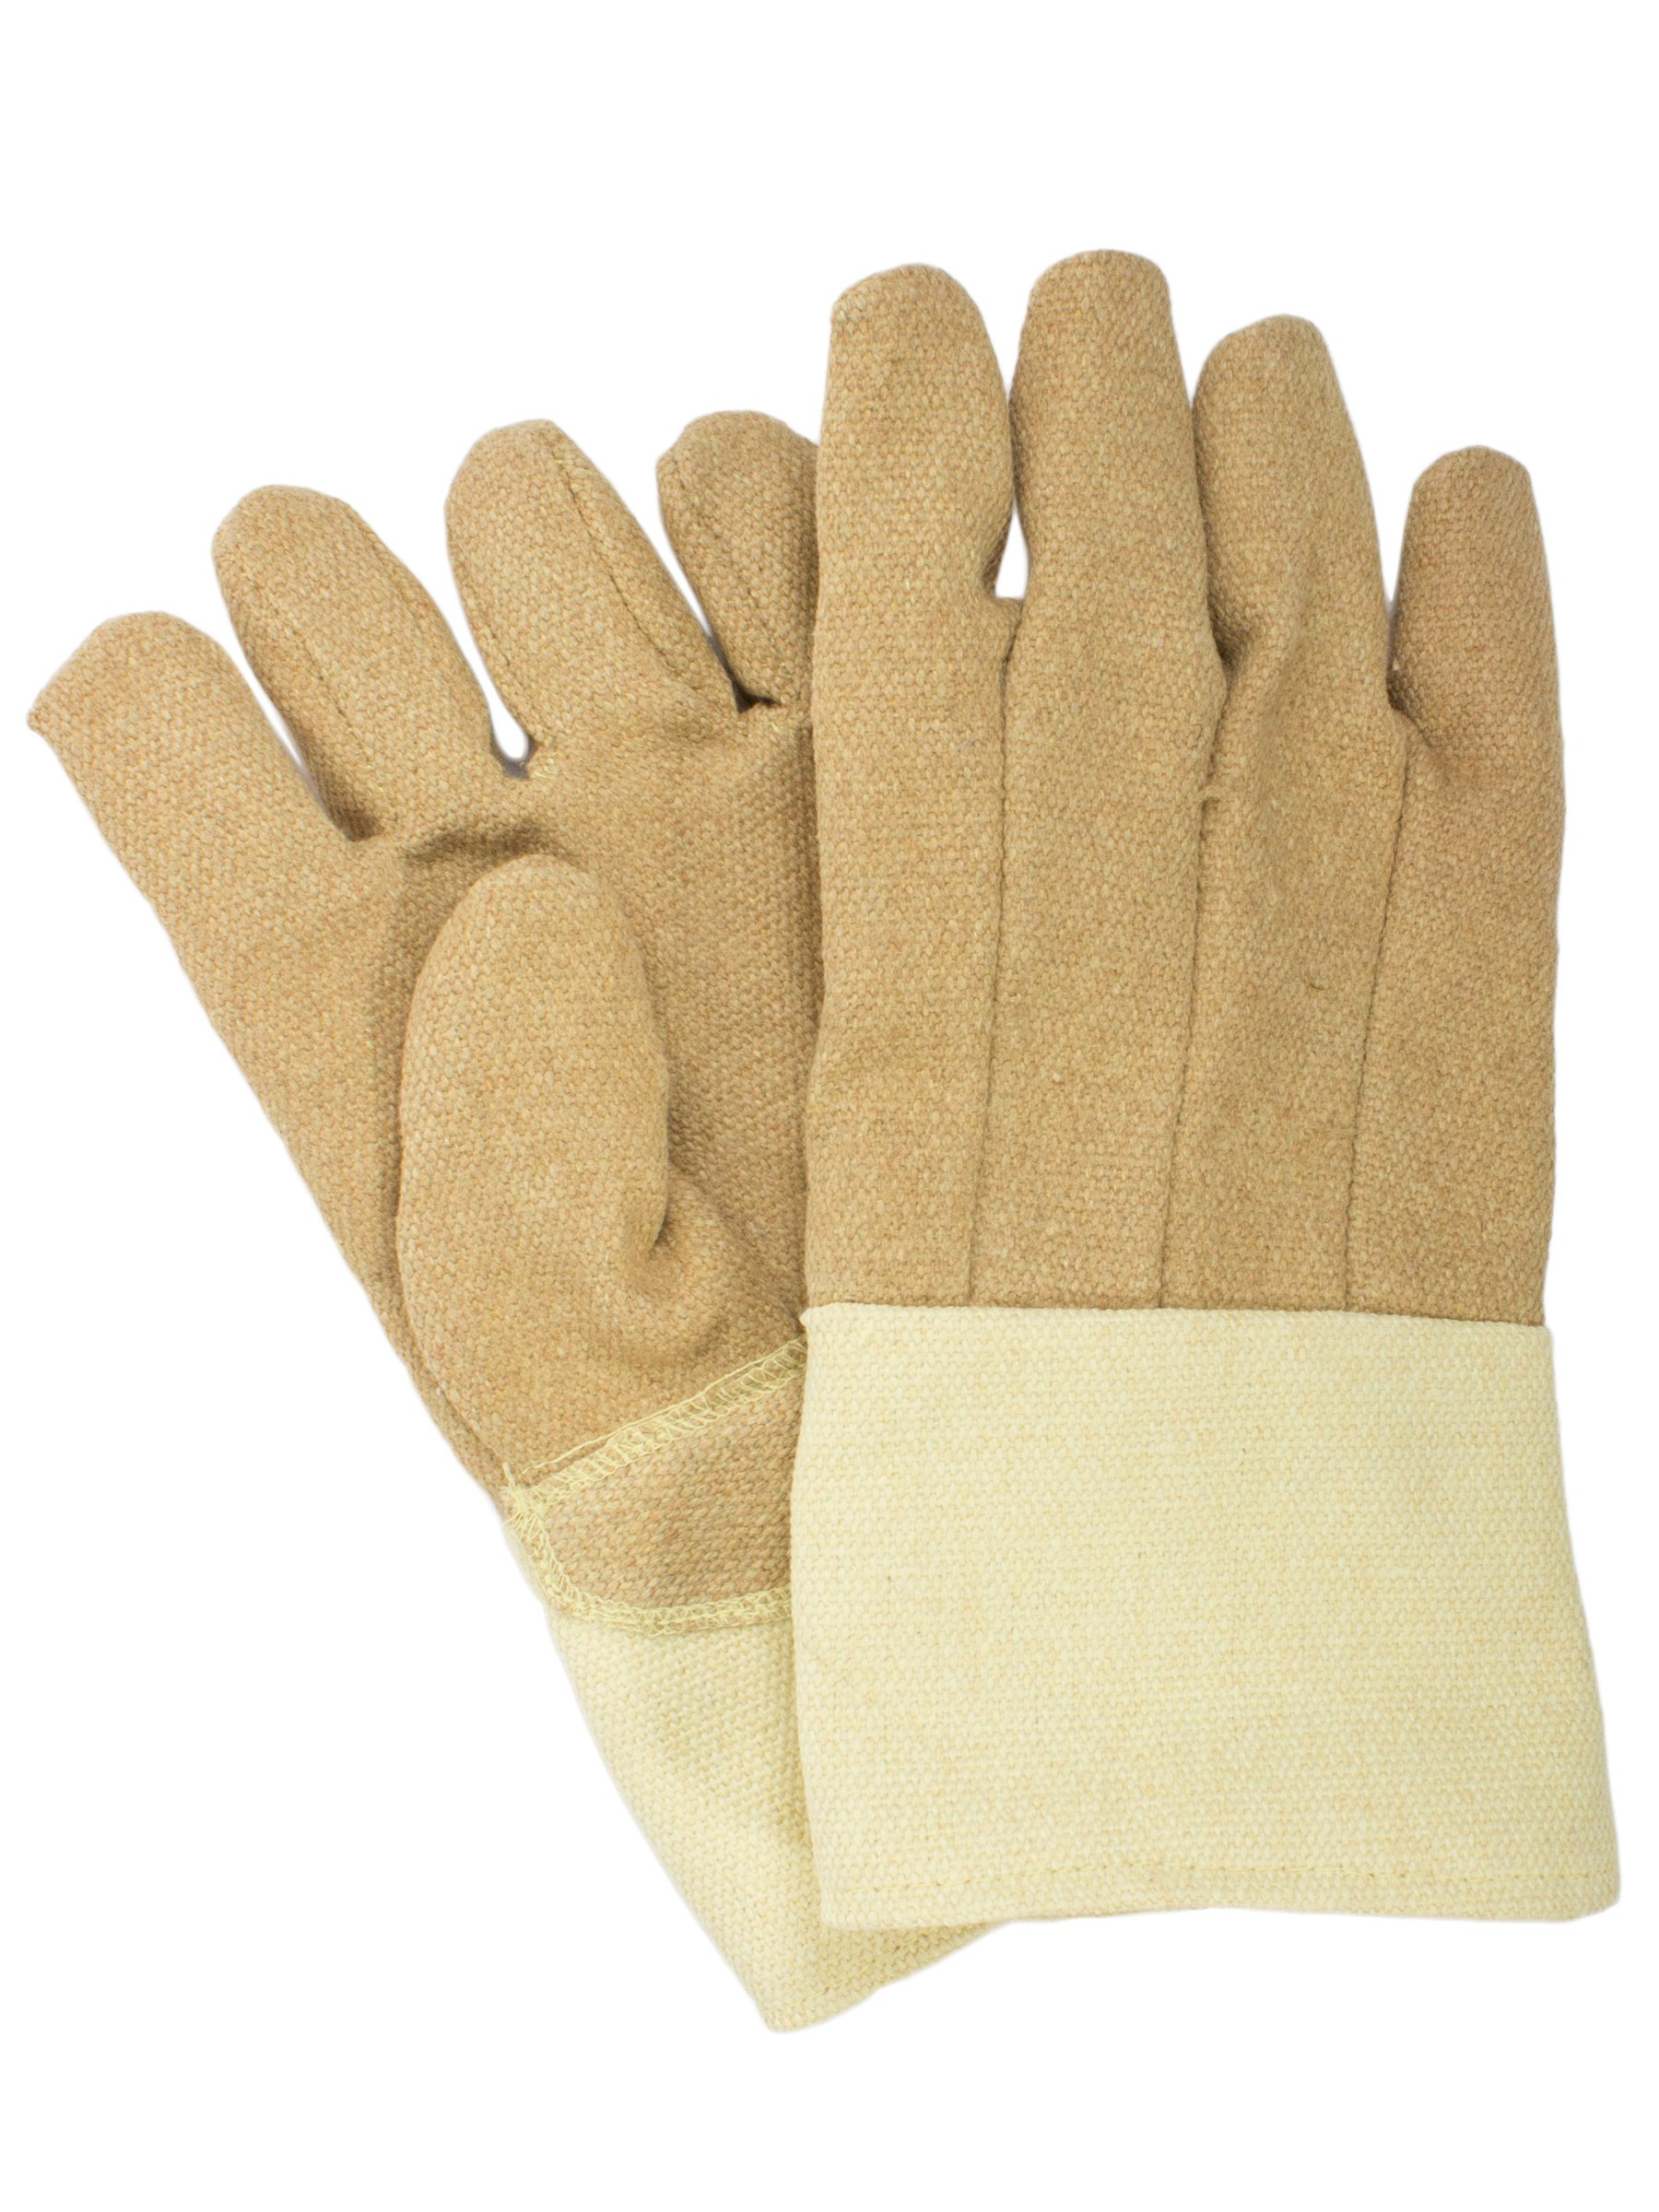 National Safety Apparel G51PCLW13714 PBI/Kevlar Glove with Thermobest Cuff, 45 oz., Large, Yellow